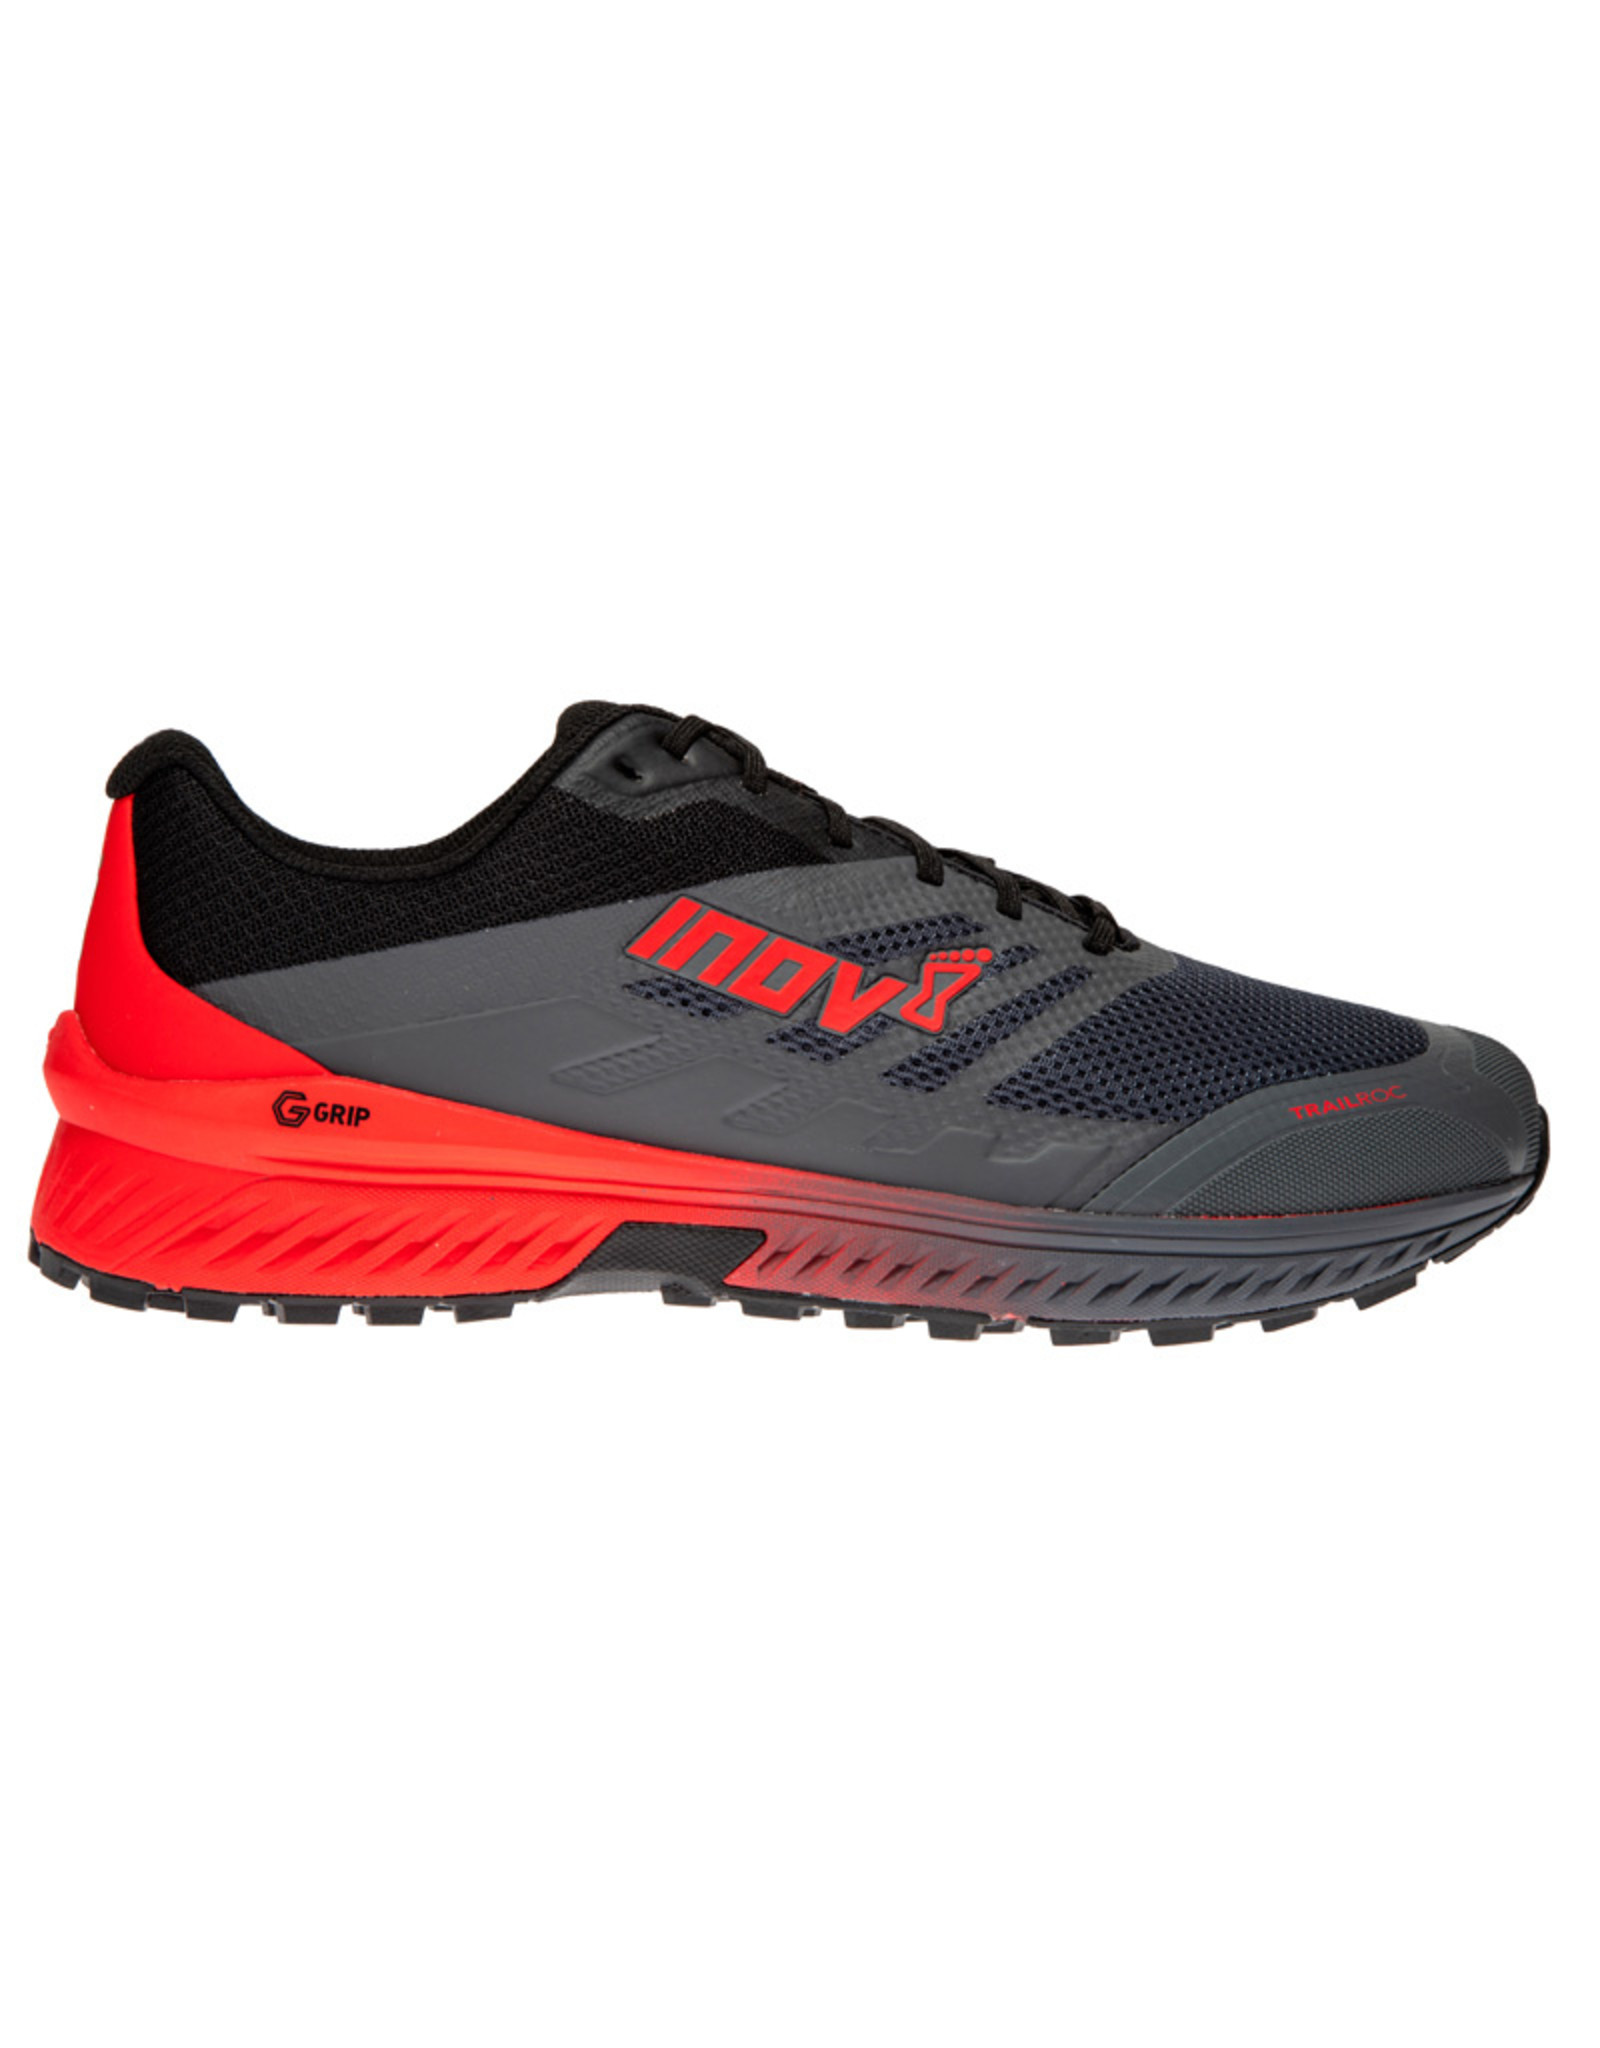 Inov-8 Trailroc 280 Chaussure Trailrun - Gris/Rouge